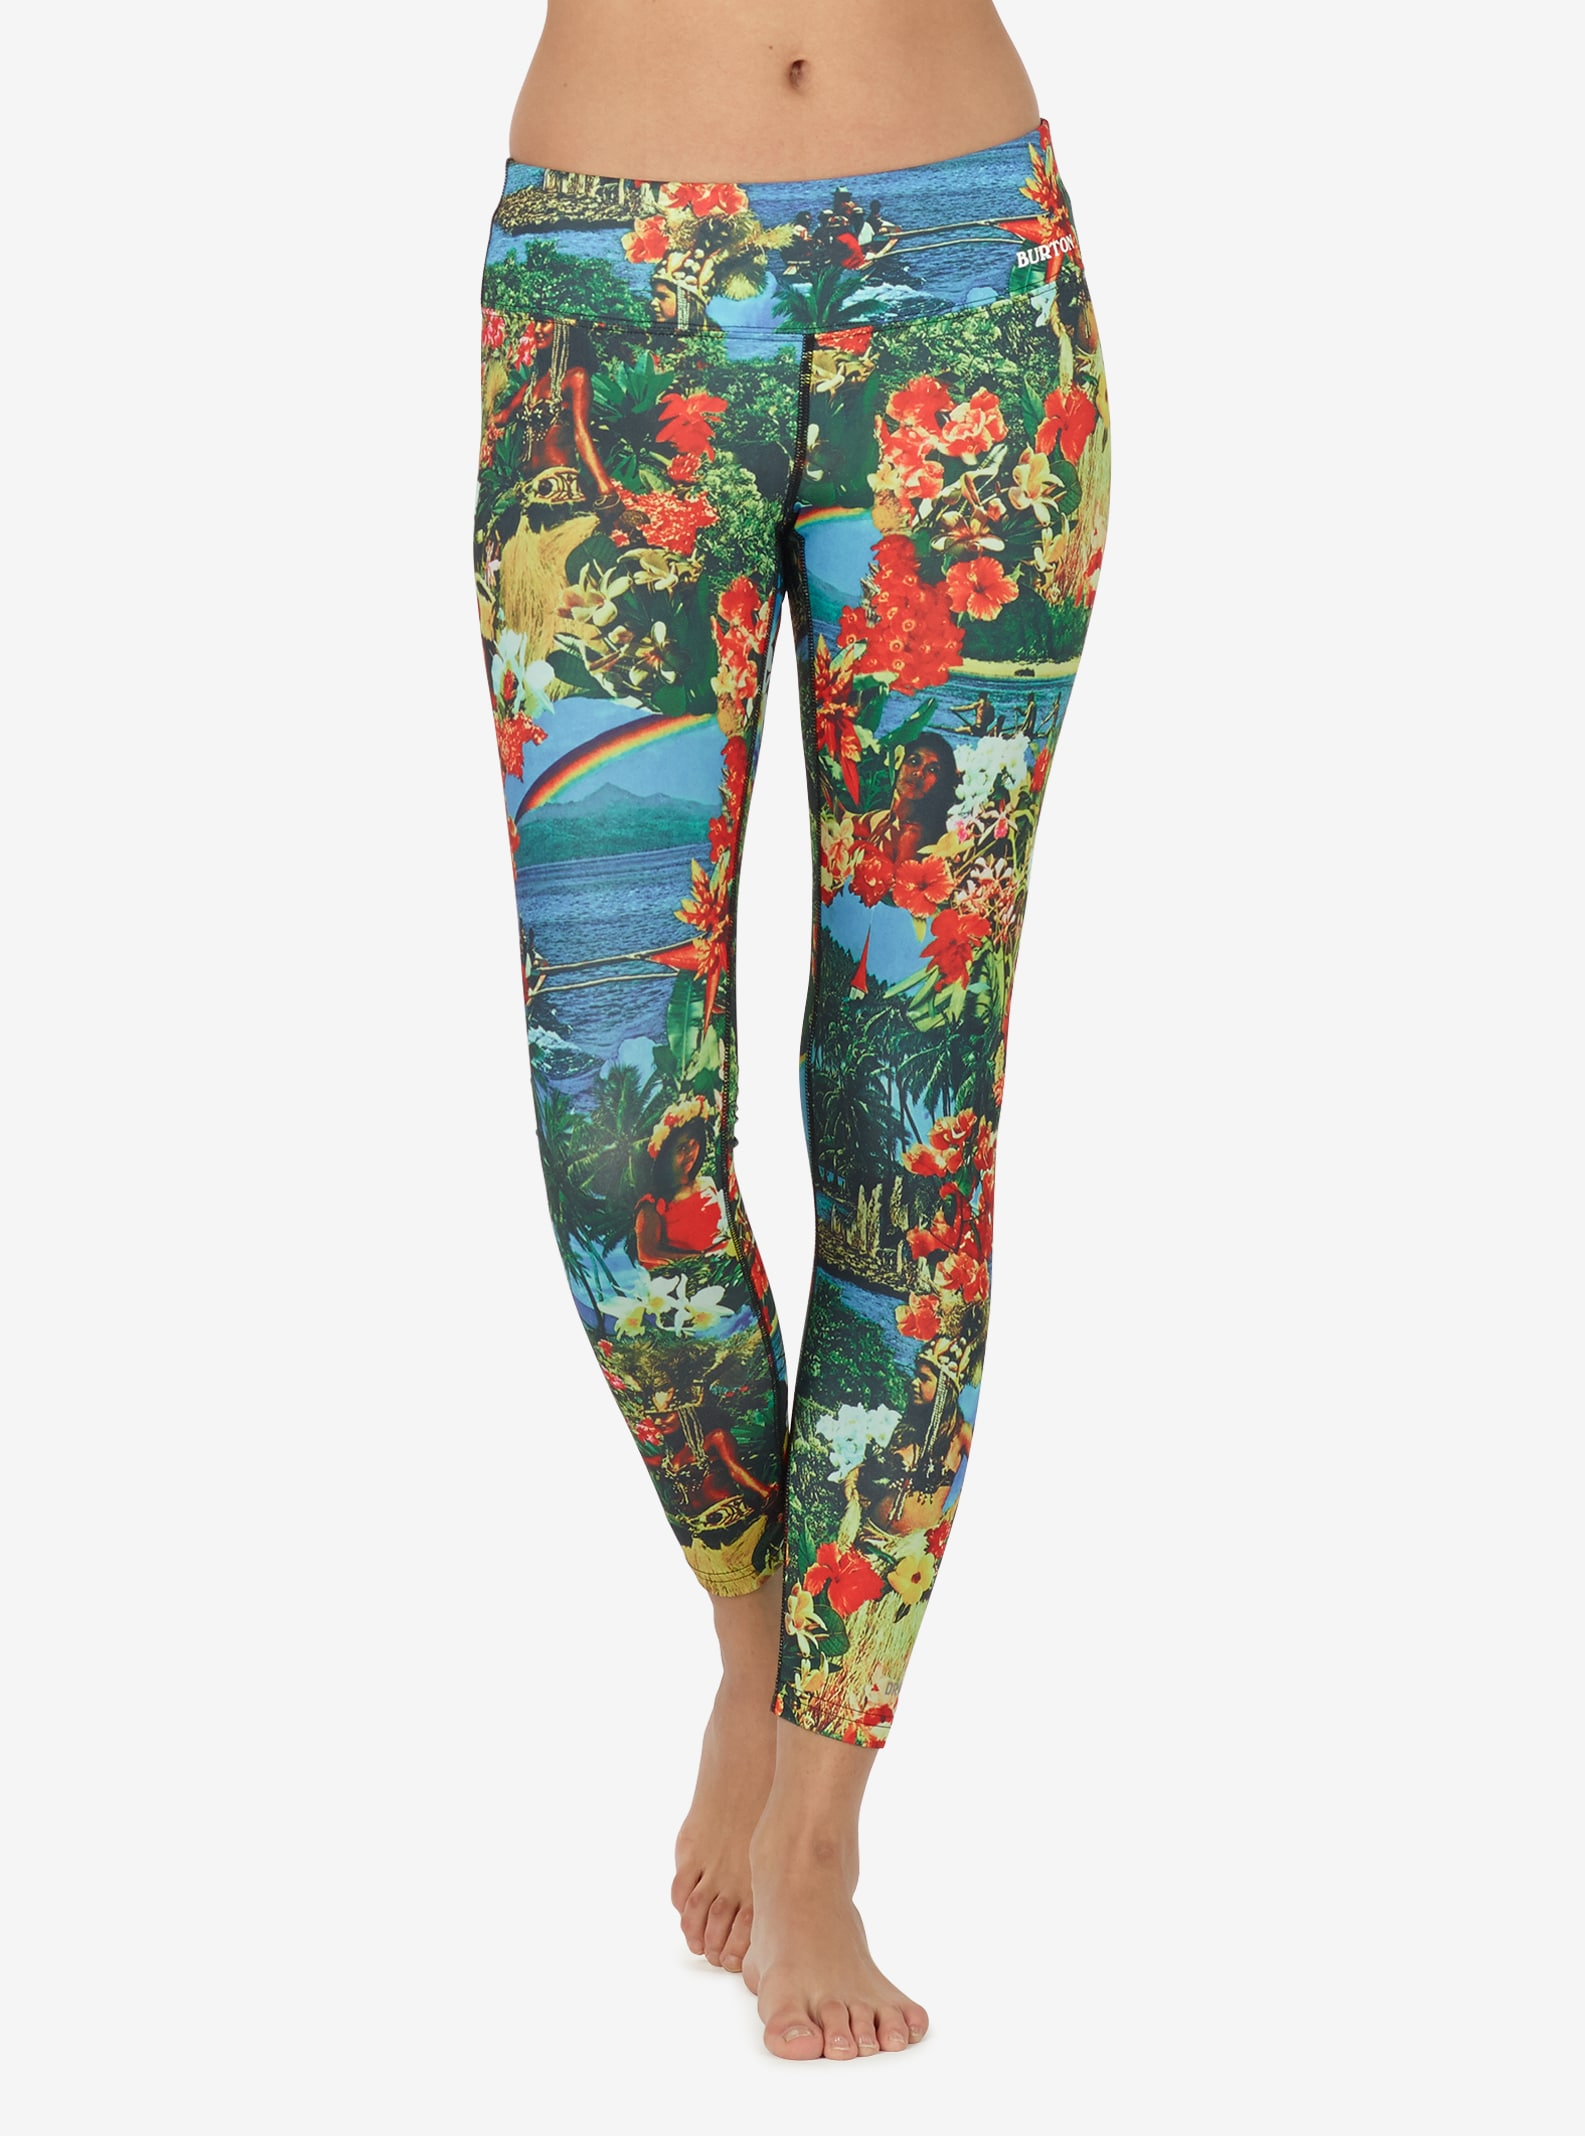 Women's Burton Lightweight Base Layer Pant shown in Maui Wowie